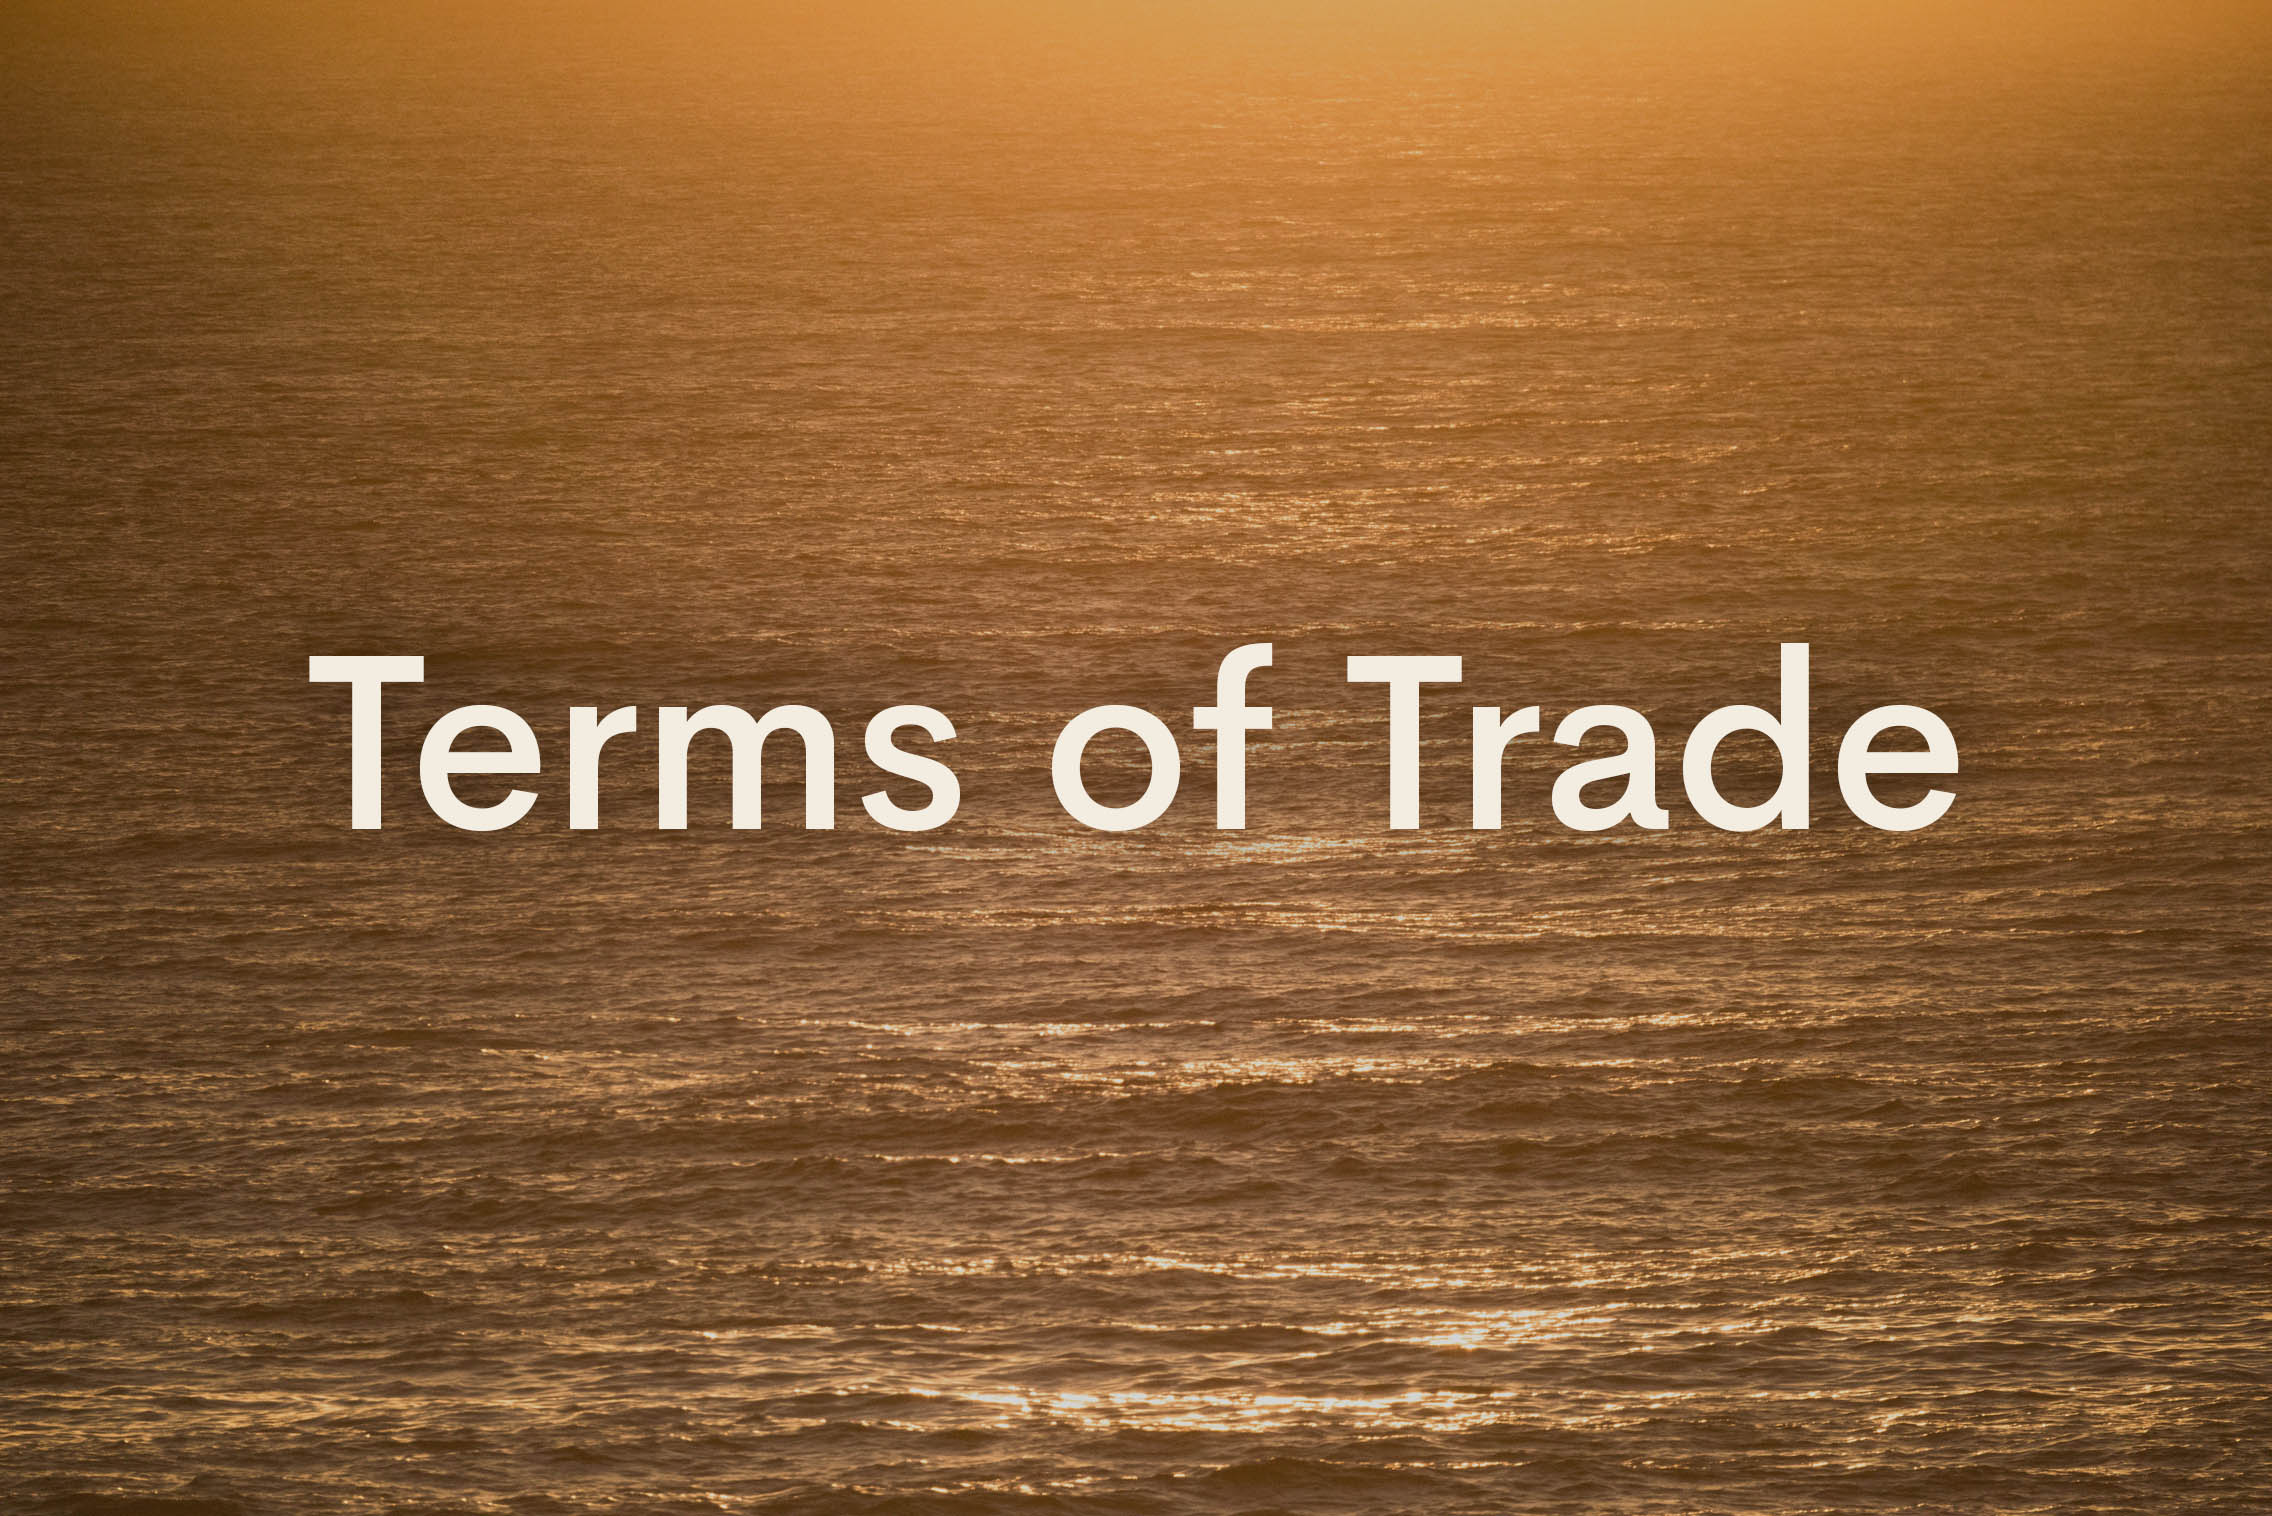 Terms-of-Trade